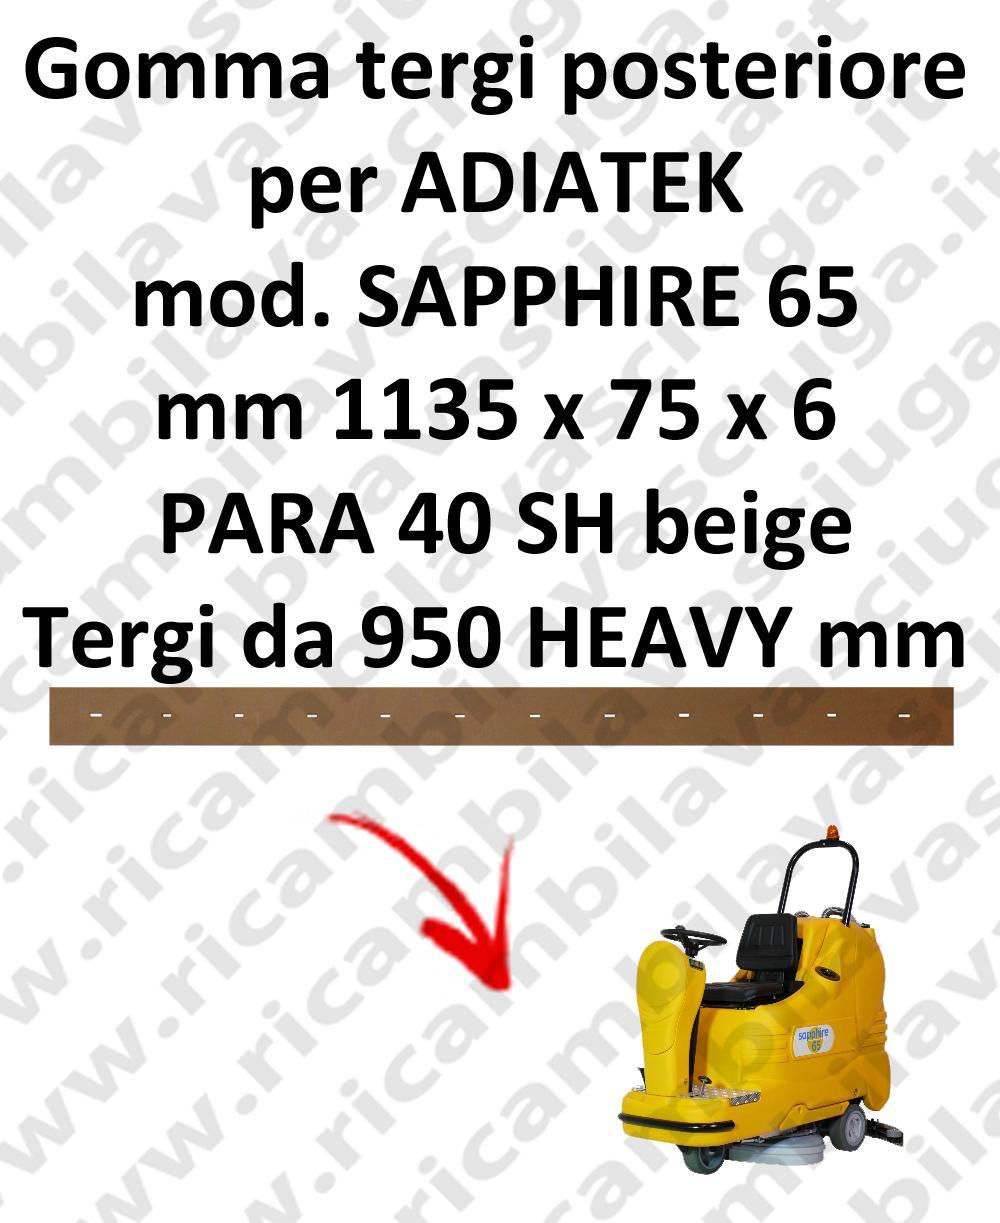 SAPPHIRE 65 Back Squeegee rubber for squeegee ADIATEK (squeegee length 950 mm)